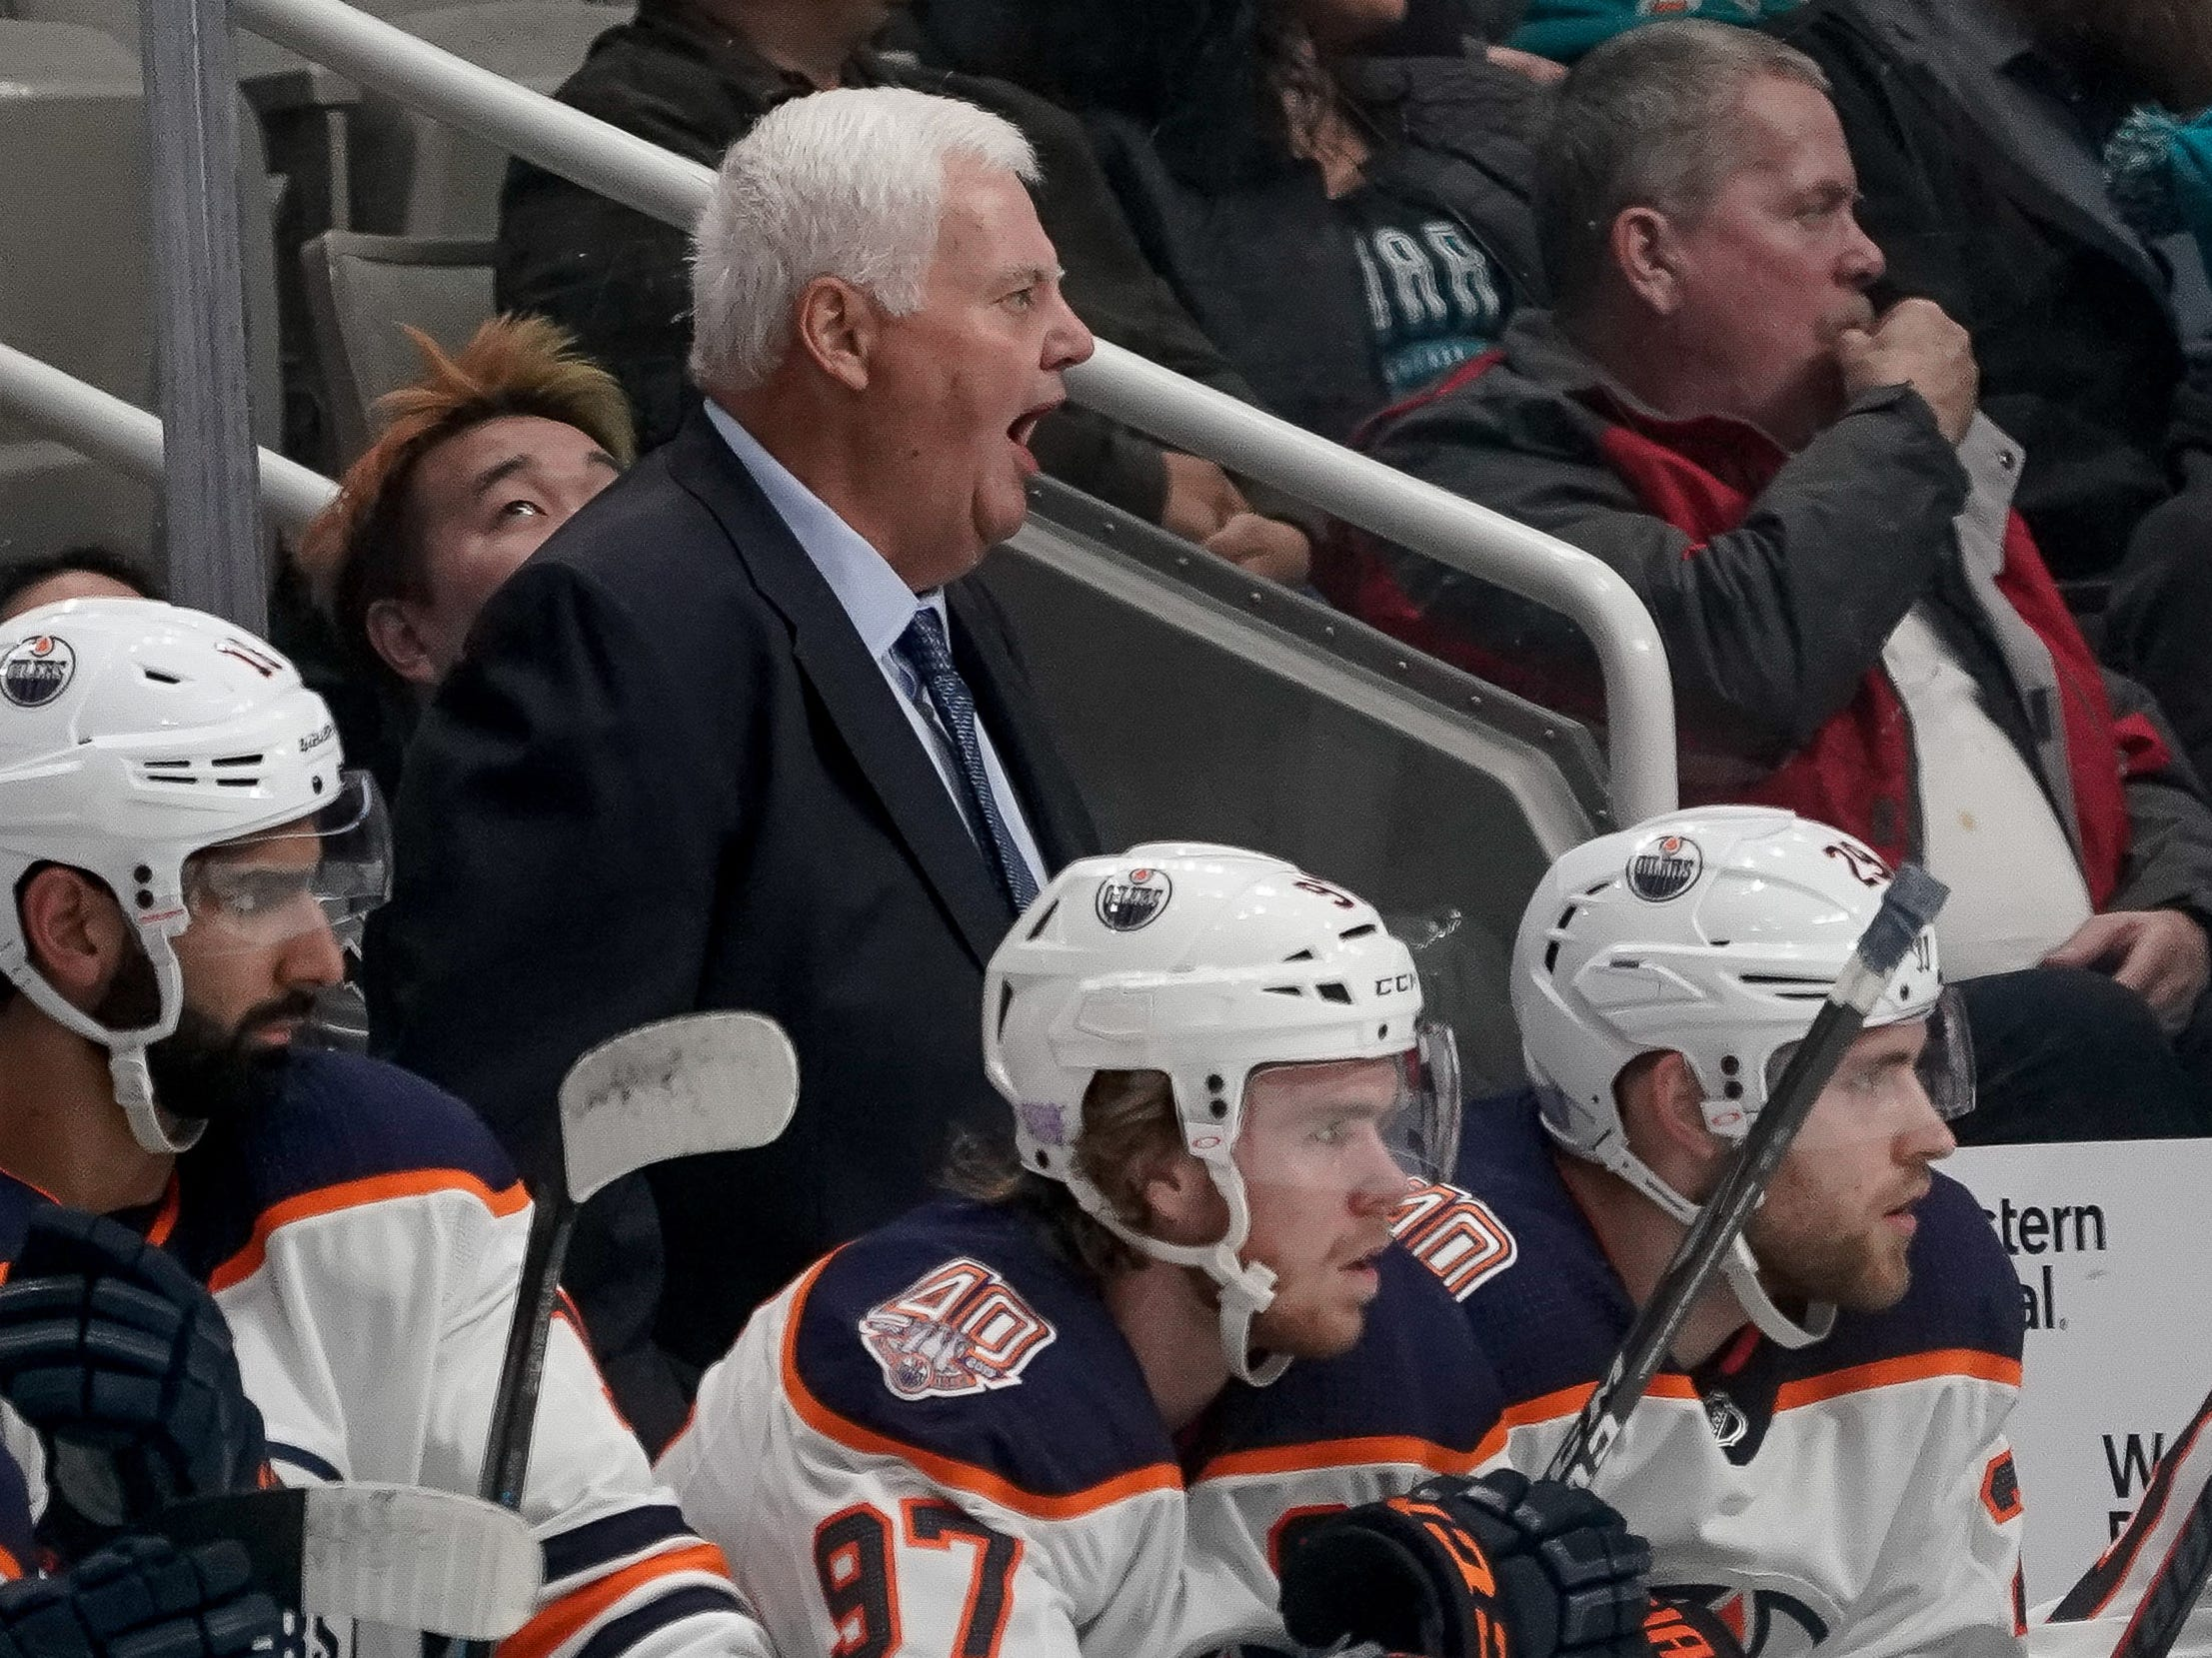 Nov. 20: Edmonton Oilers new head coach Ken Hitchcock yells in a game against the San Jose Sharks. San Jose scored 45 seconds in, but the Oilers rallied to win 4-3 in overtime in Hitchcock's debut.